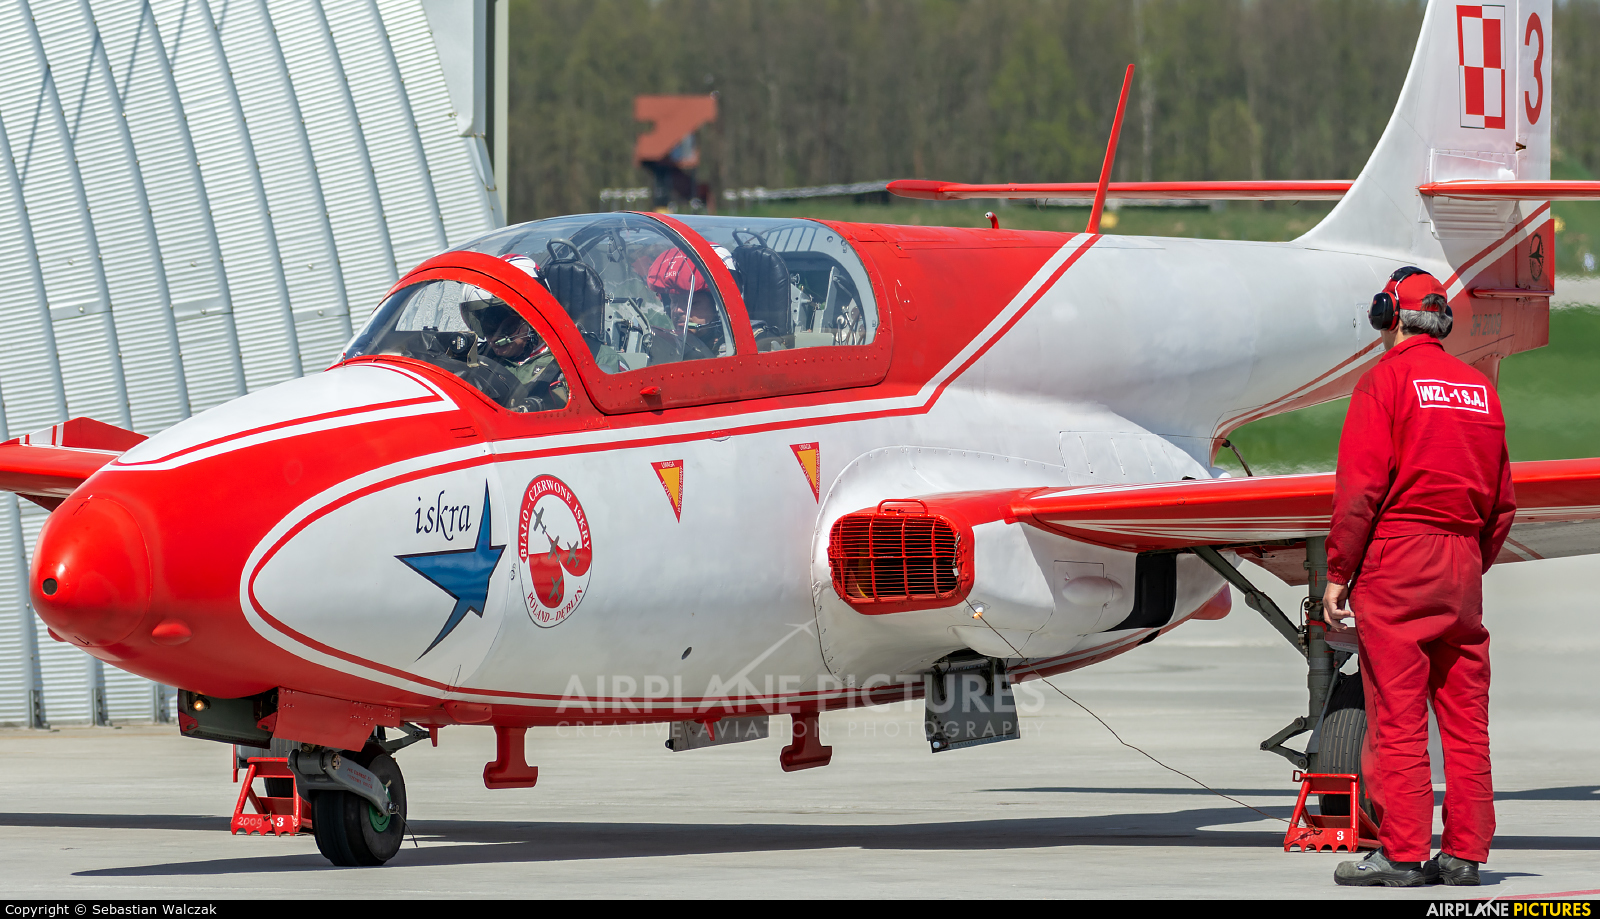 Poland - Air Force: White & Red Iskras 3H2009 aircraft at Dęblin